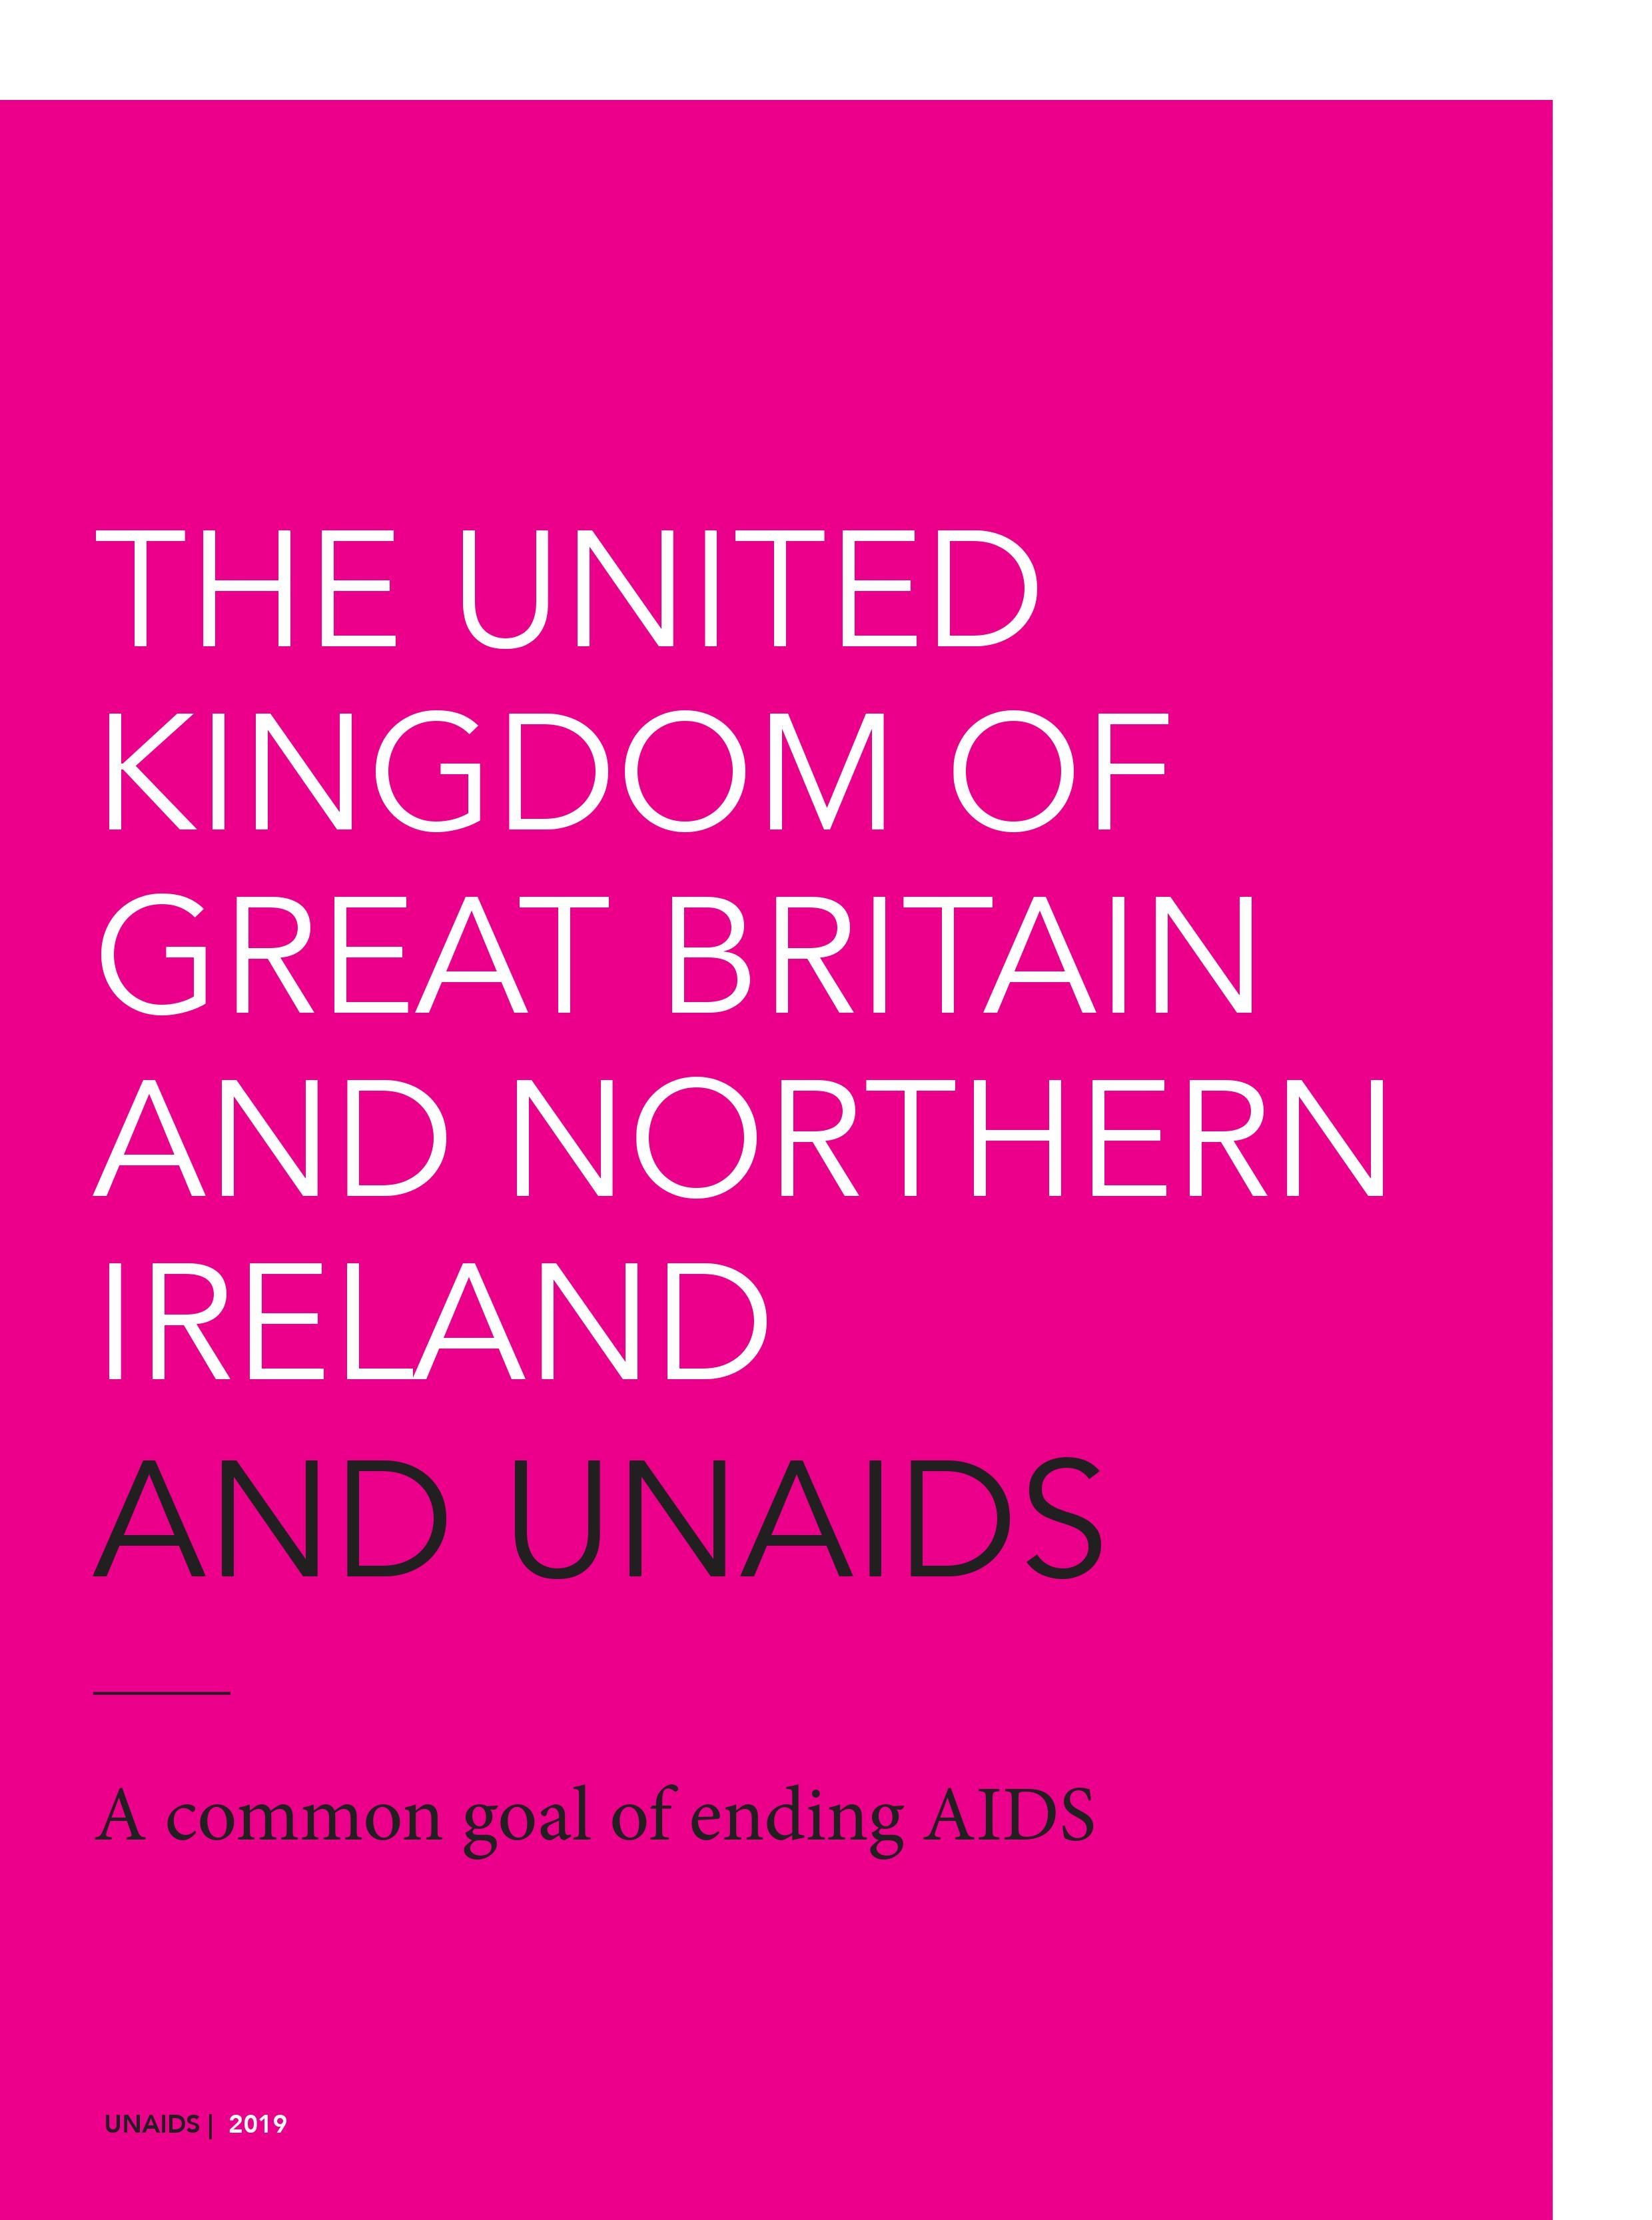 The UK and UNAIDS